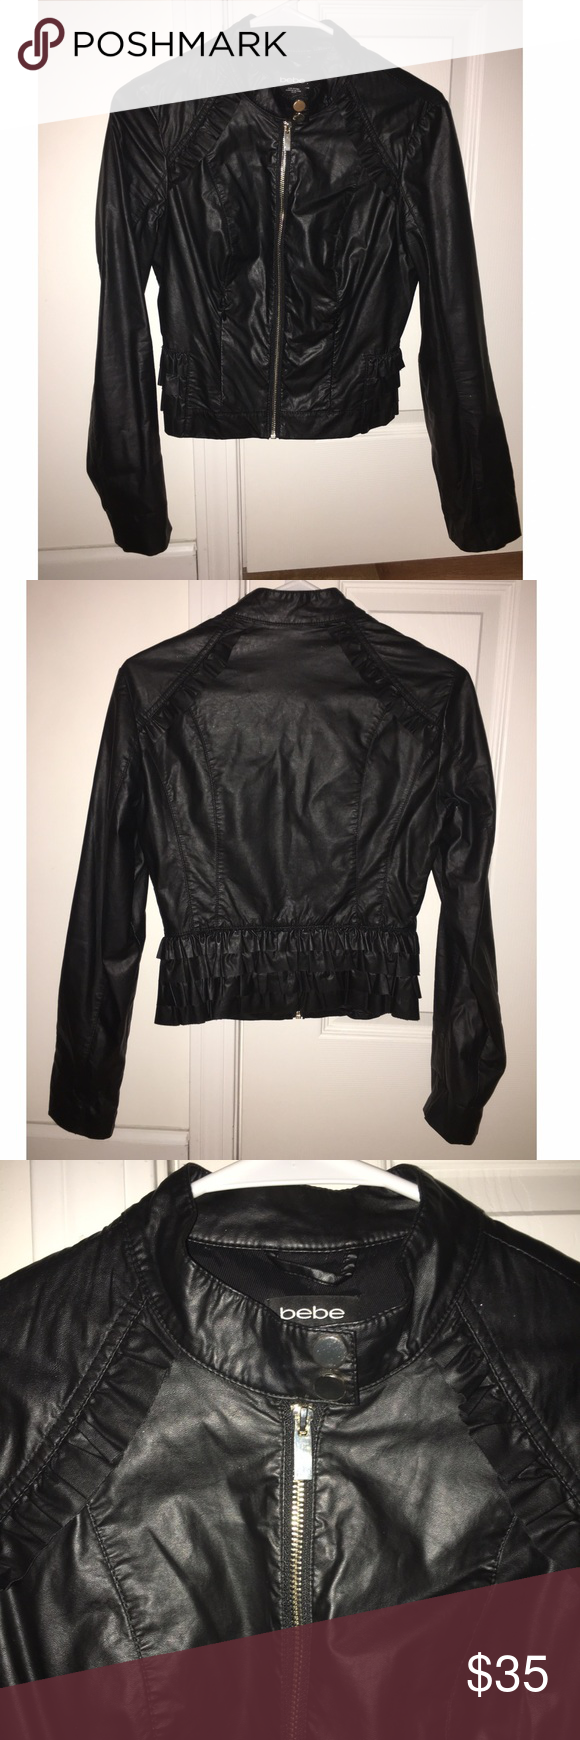 Bebe Ruffle Leather Jacket Super cute faux leather jacket with ruffle detail. Back has a cute peplum design with riddles. Thin and lined. Silver hardware. Worn twice. bebe Jackets & Coats